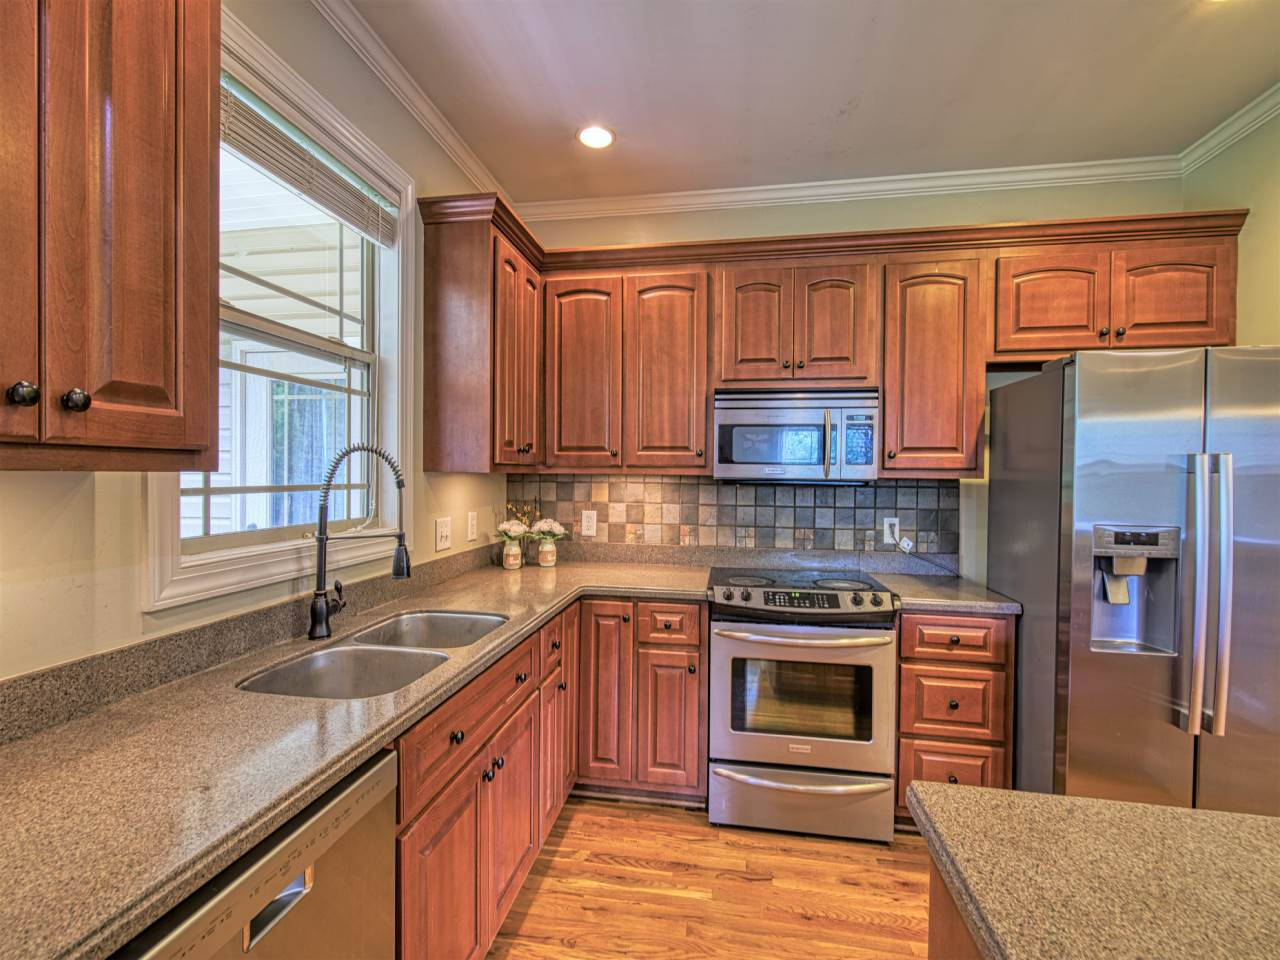 110 Grand Hollow Rd., Easley, SC 29642